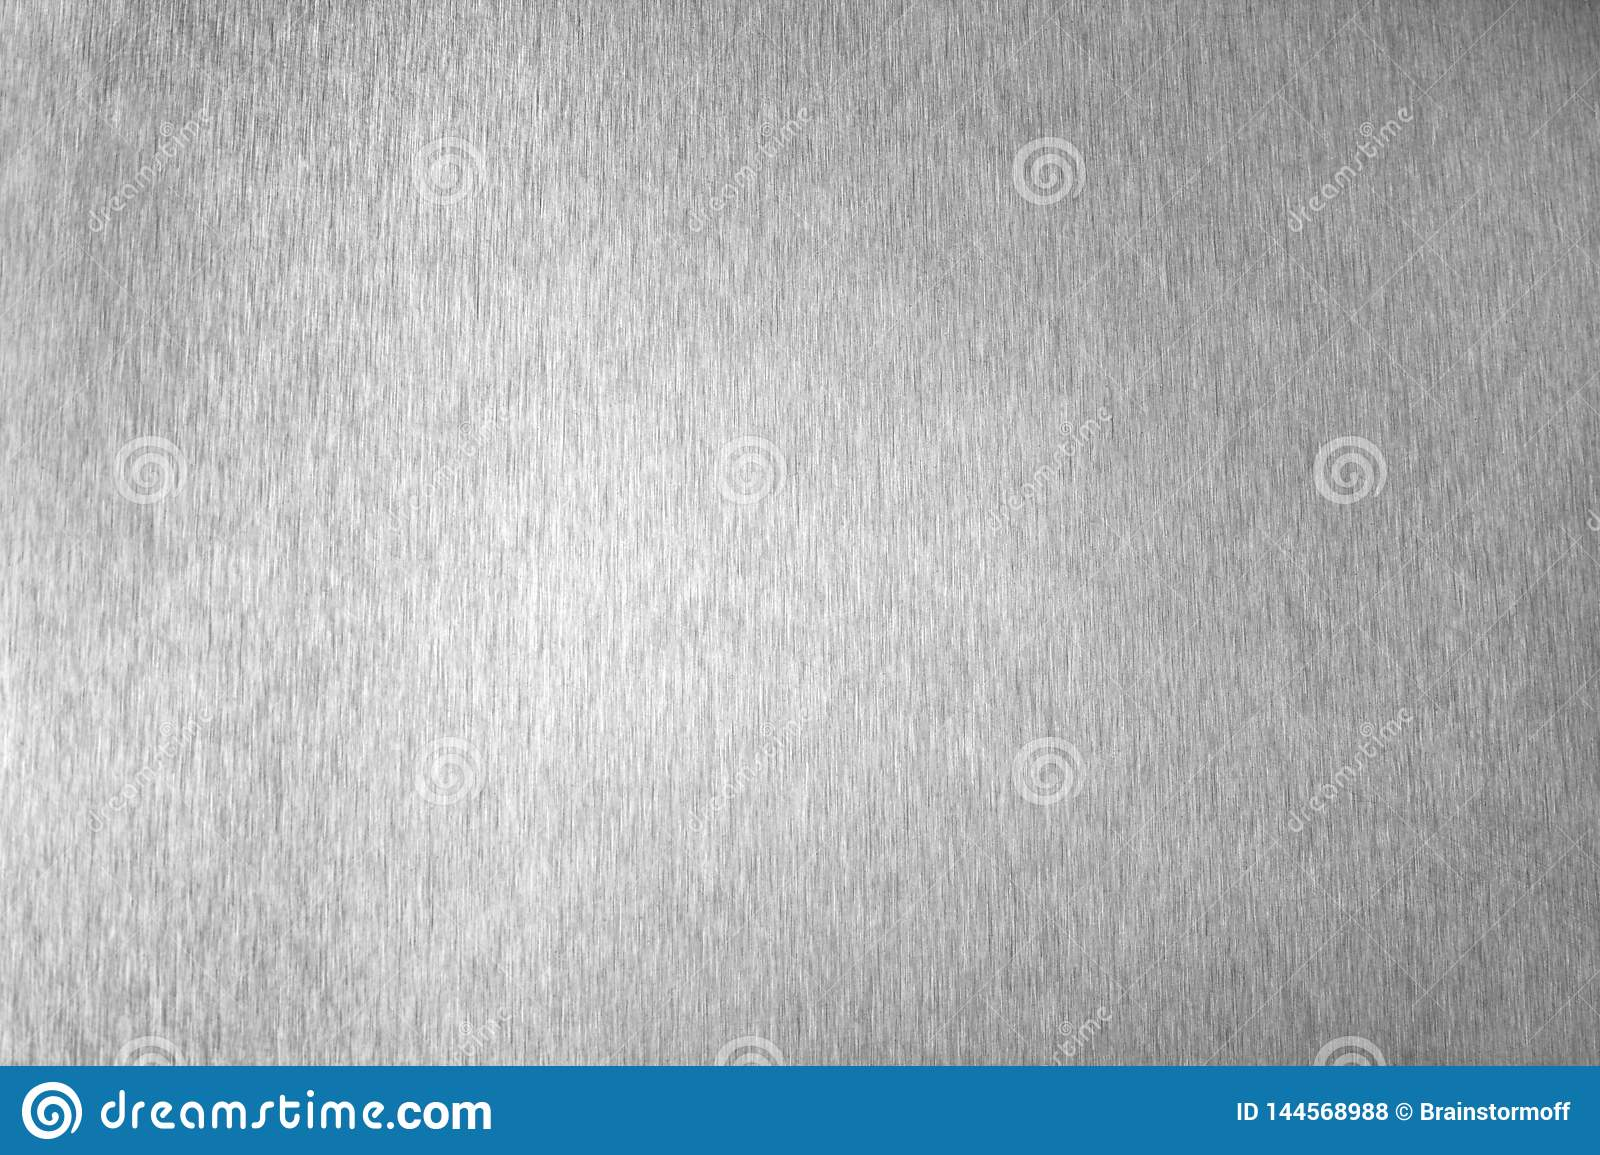 Silver metal shiny empty surface, monochrome shining metallic background, brushed black and white iron sheet backdrop close up